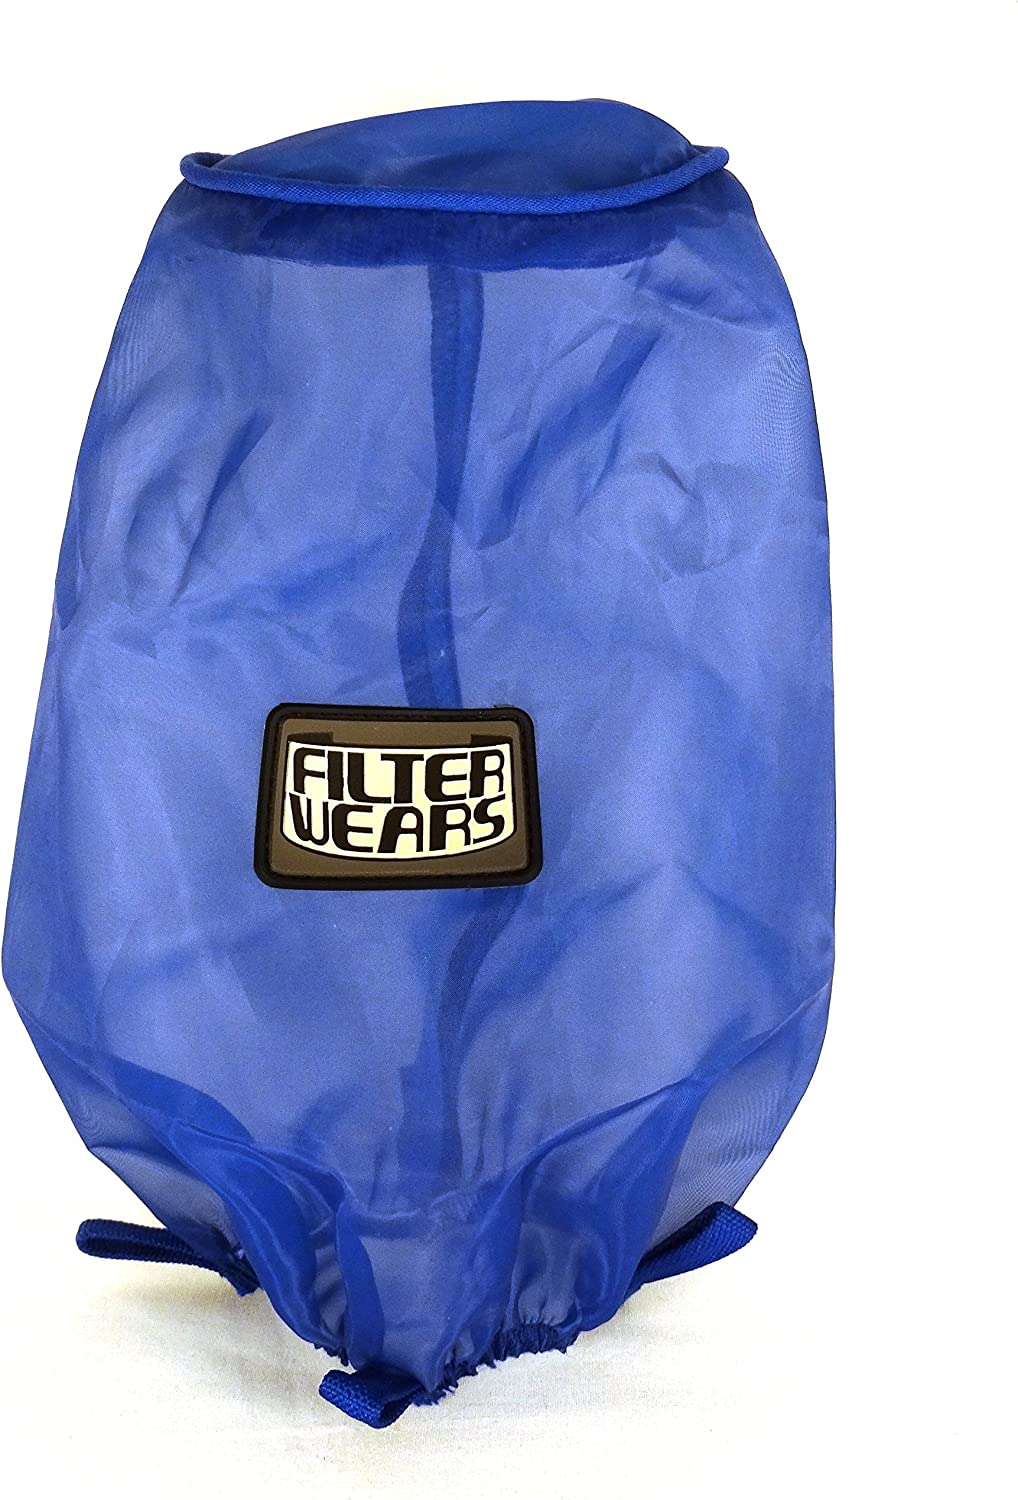 BLUE FILTERWEARS Pre-Filter F116L For Spectre Air Filters 9736 9731 9732 9738